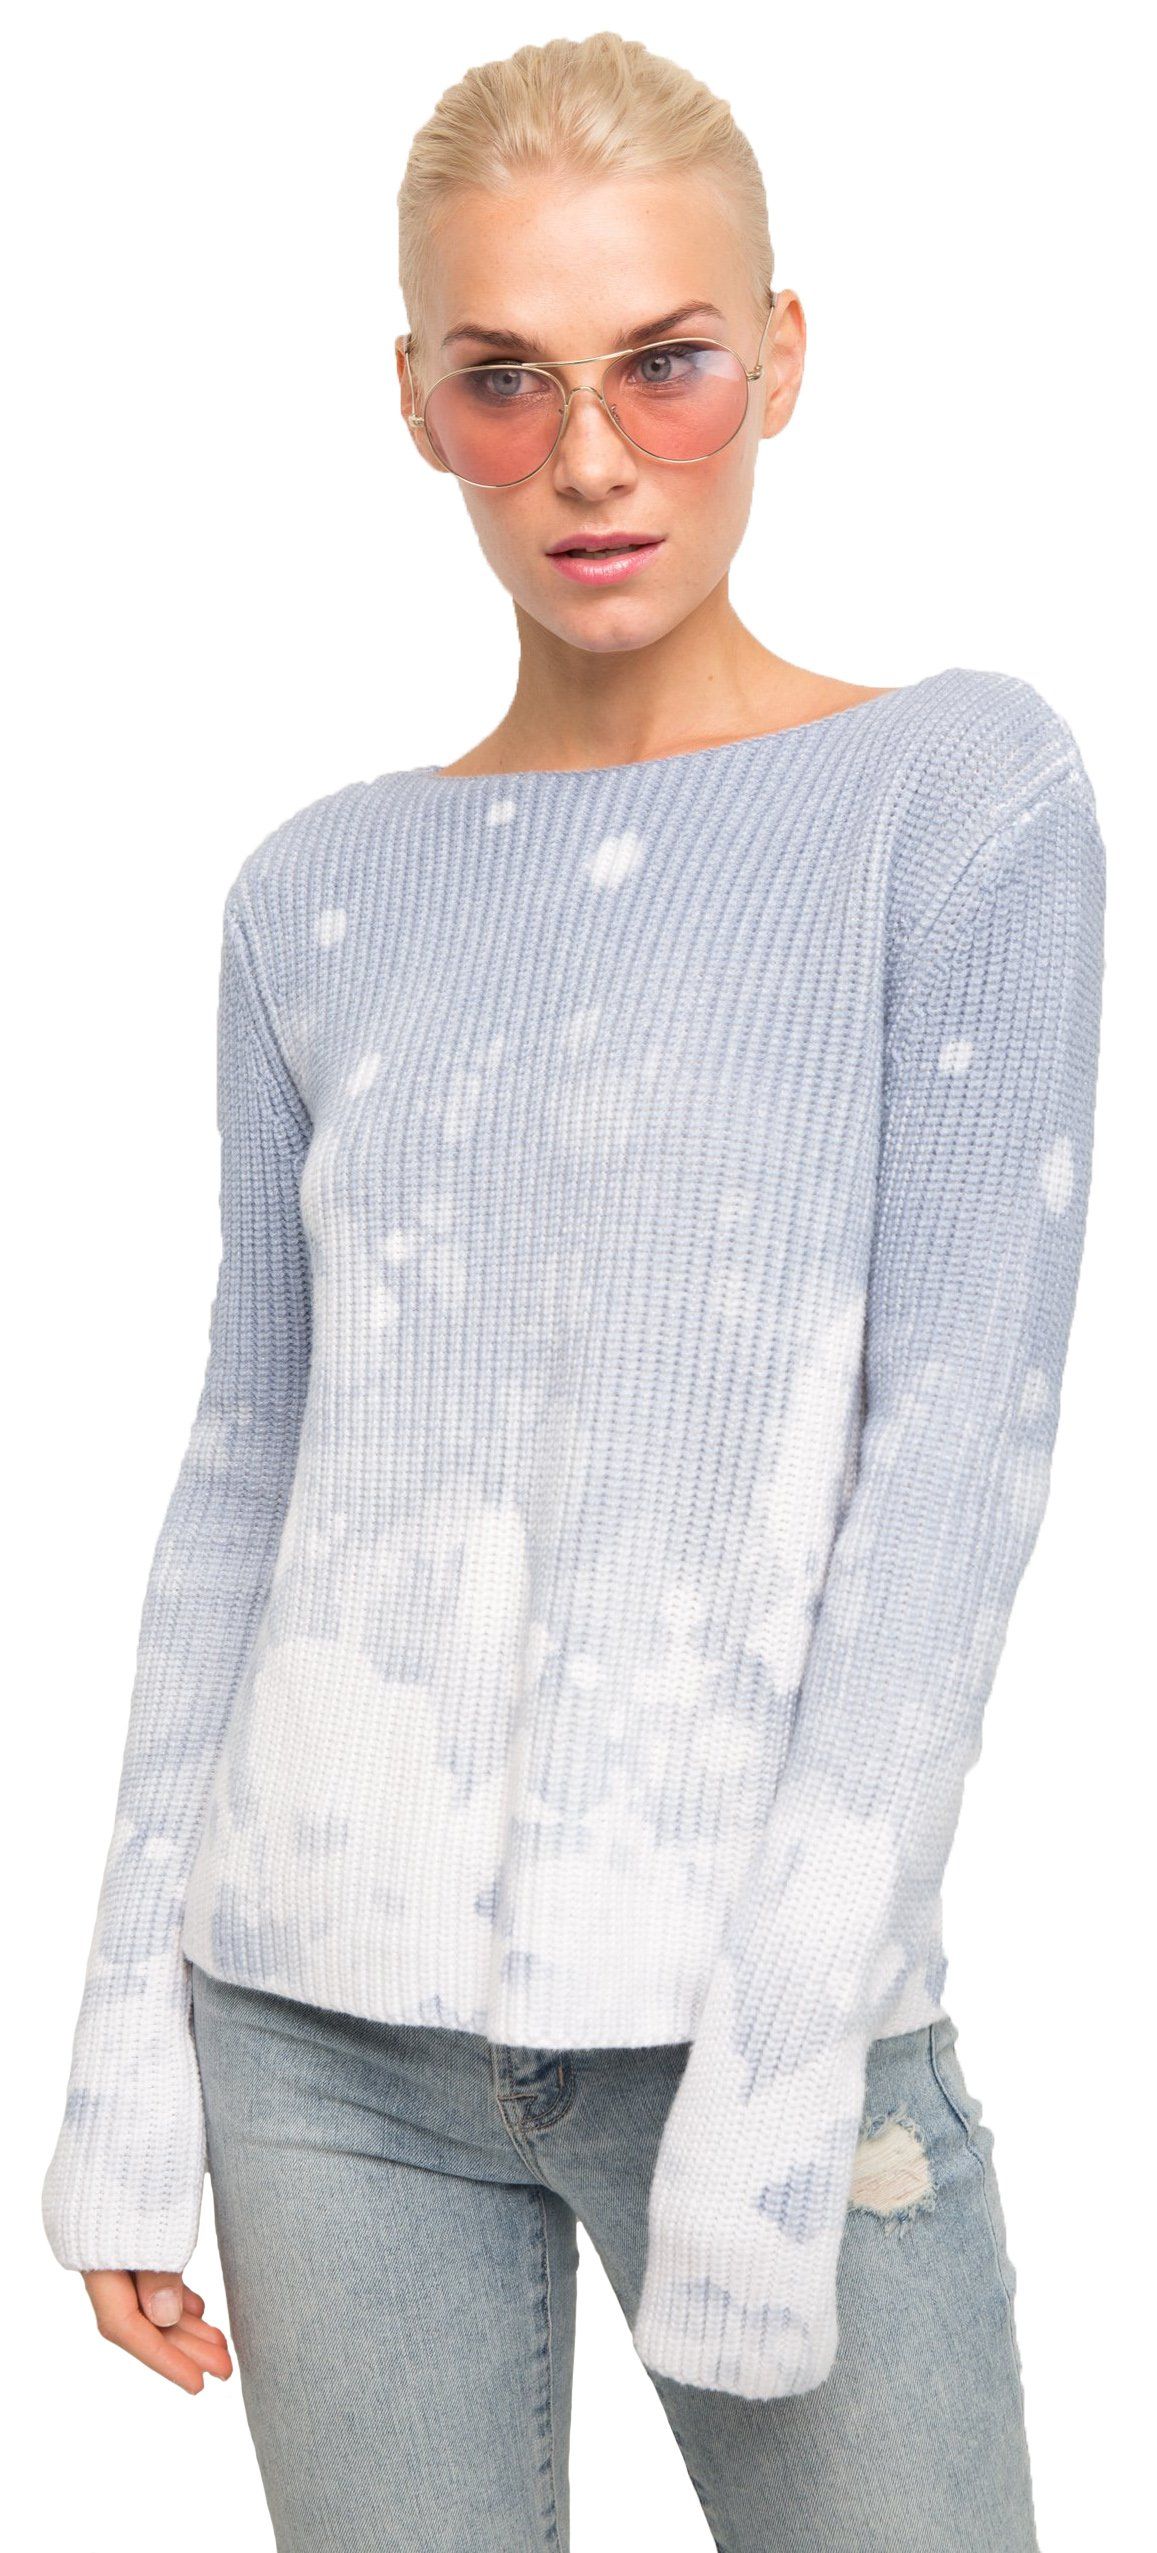 Generation Love Jayden Sweater In Bleached Blue, s by Generation Love (Image #1)